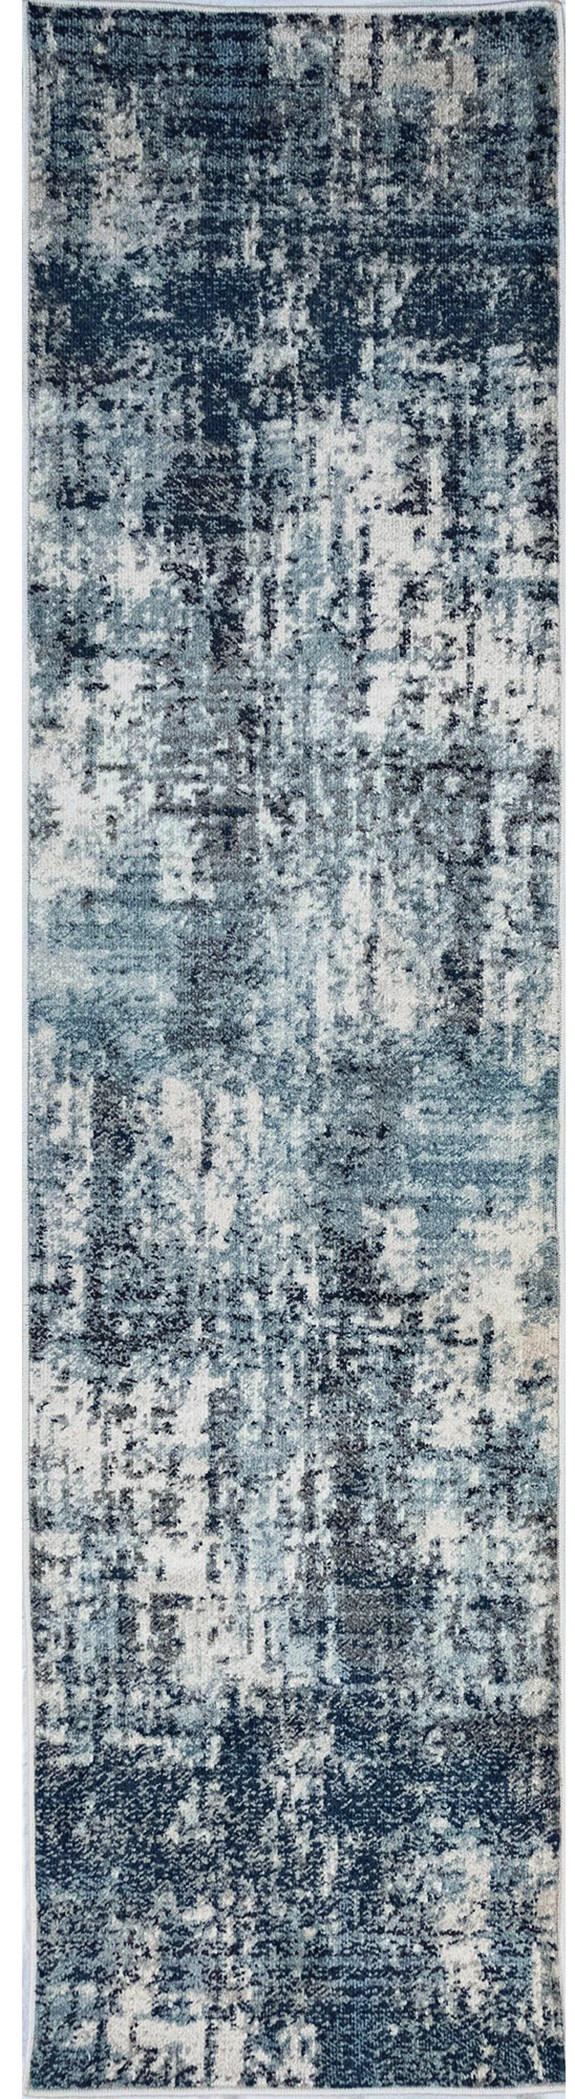 Carbon (6355-47) Abstract Area Rug